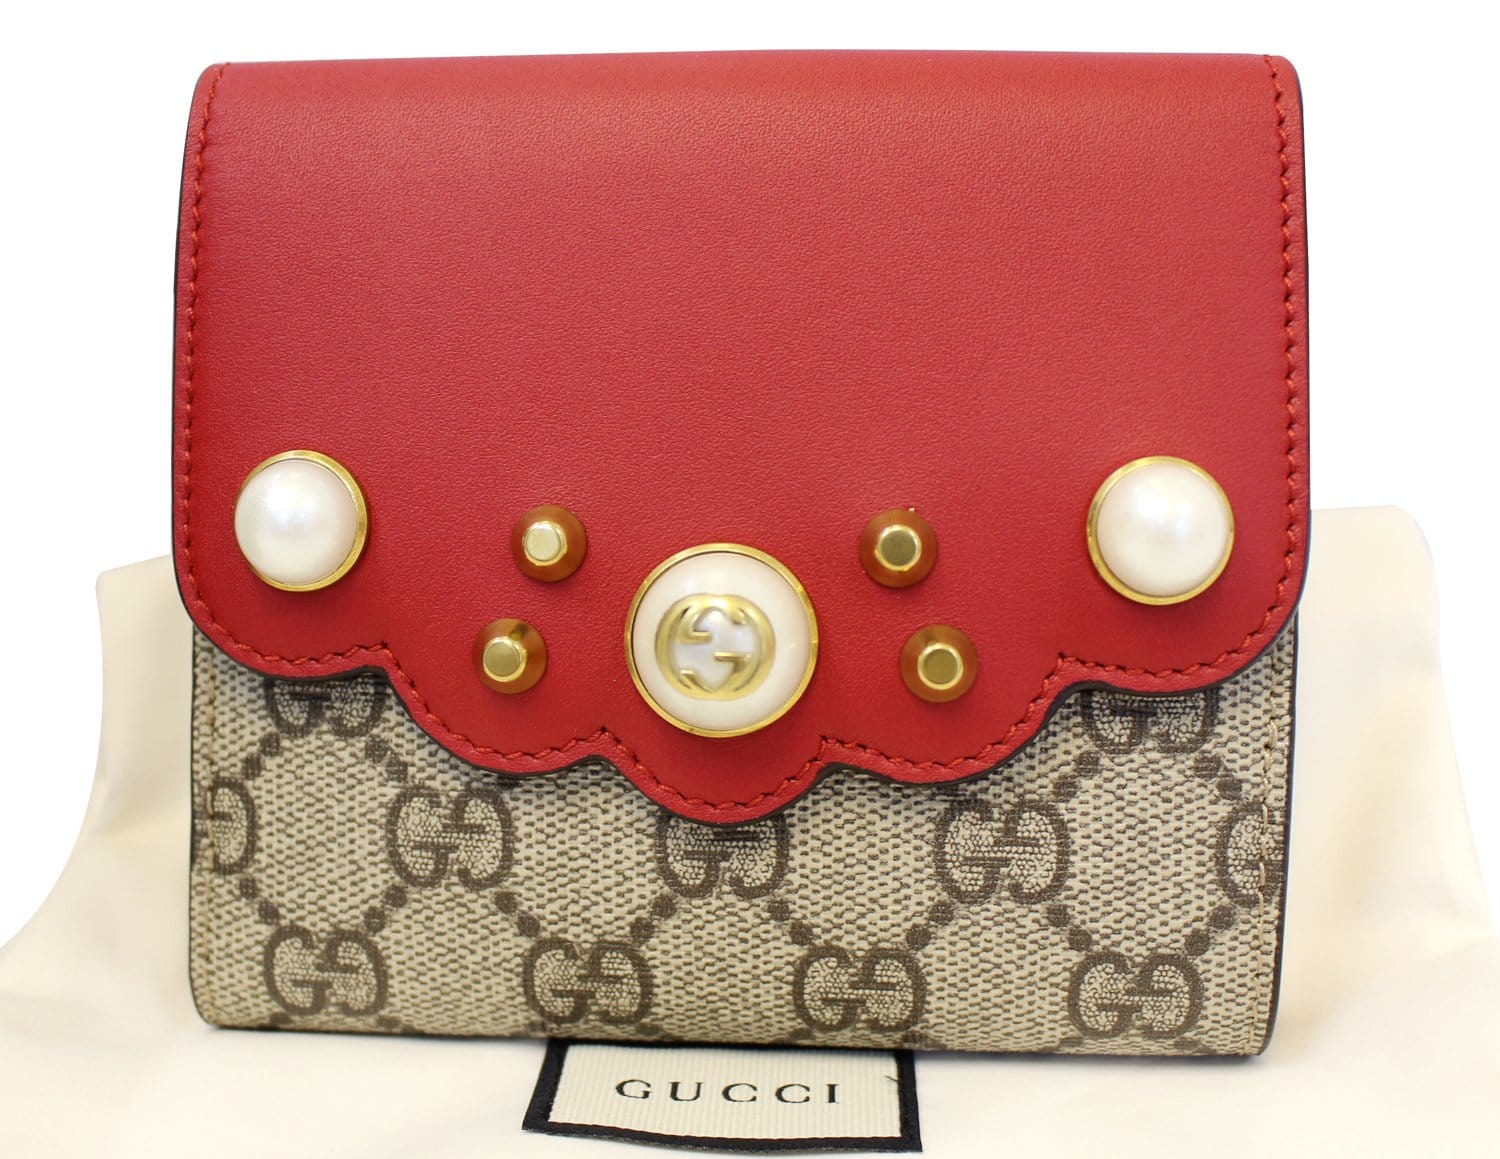 6ecc2df5a602 GUCCI GG Supreme French Flap Wallet Pearl Studded 431480